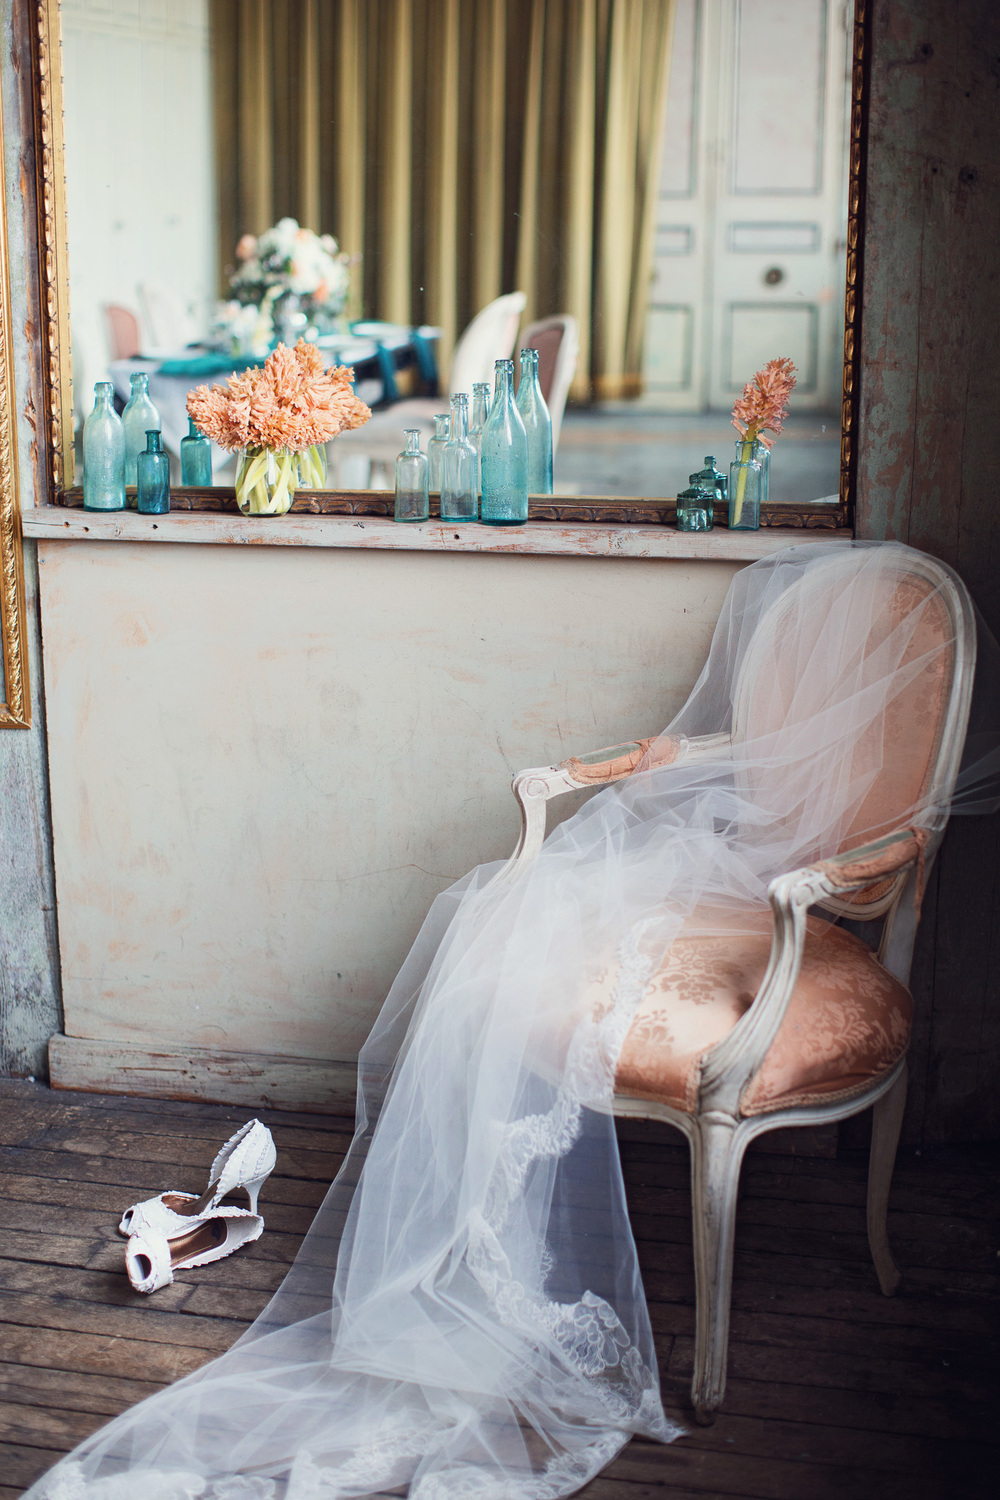 lace-veil-draped-peach-chair-vintage-pretty